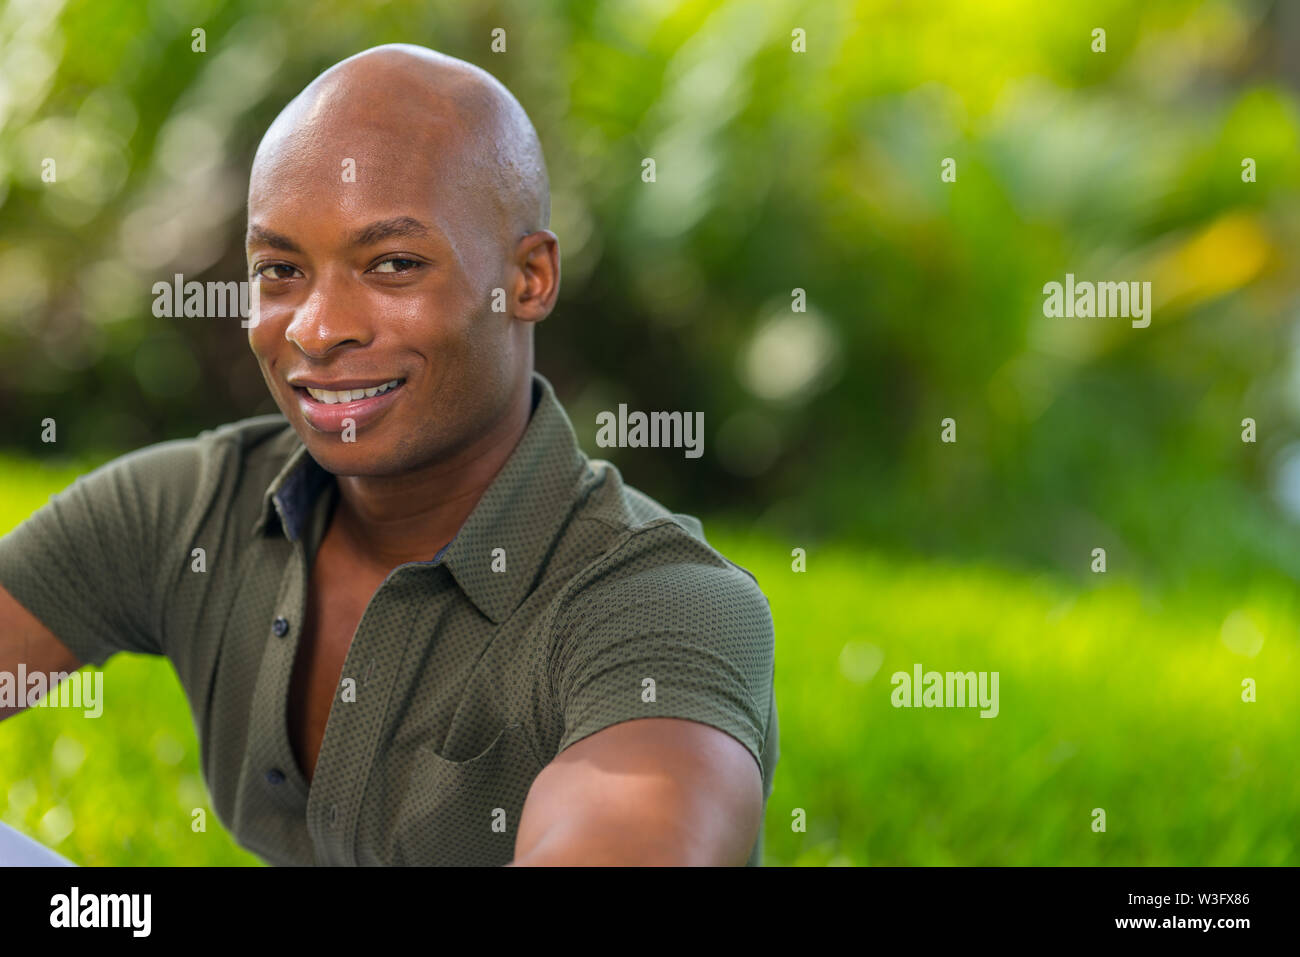 Vibrant portrait of a handsome young African American man smiling at the camera. Man is posing outdoors in a park setting - Stock Image